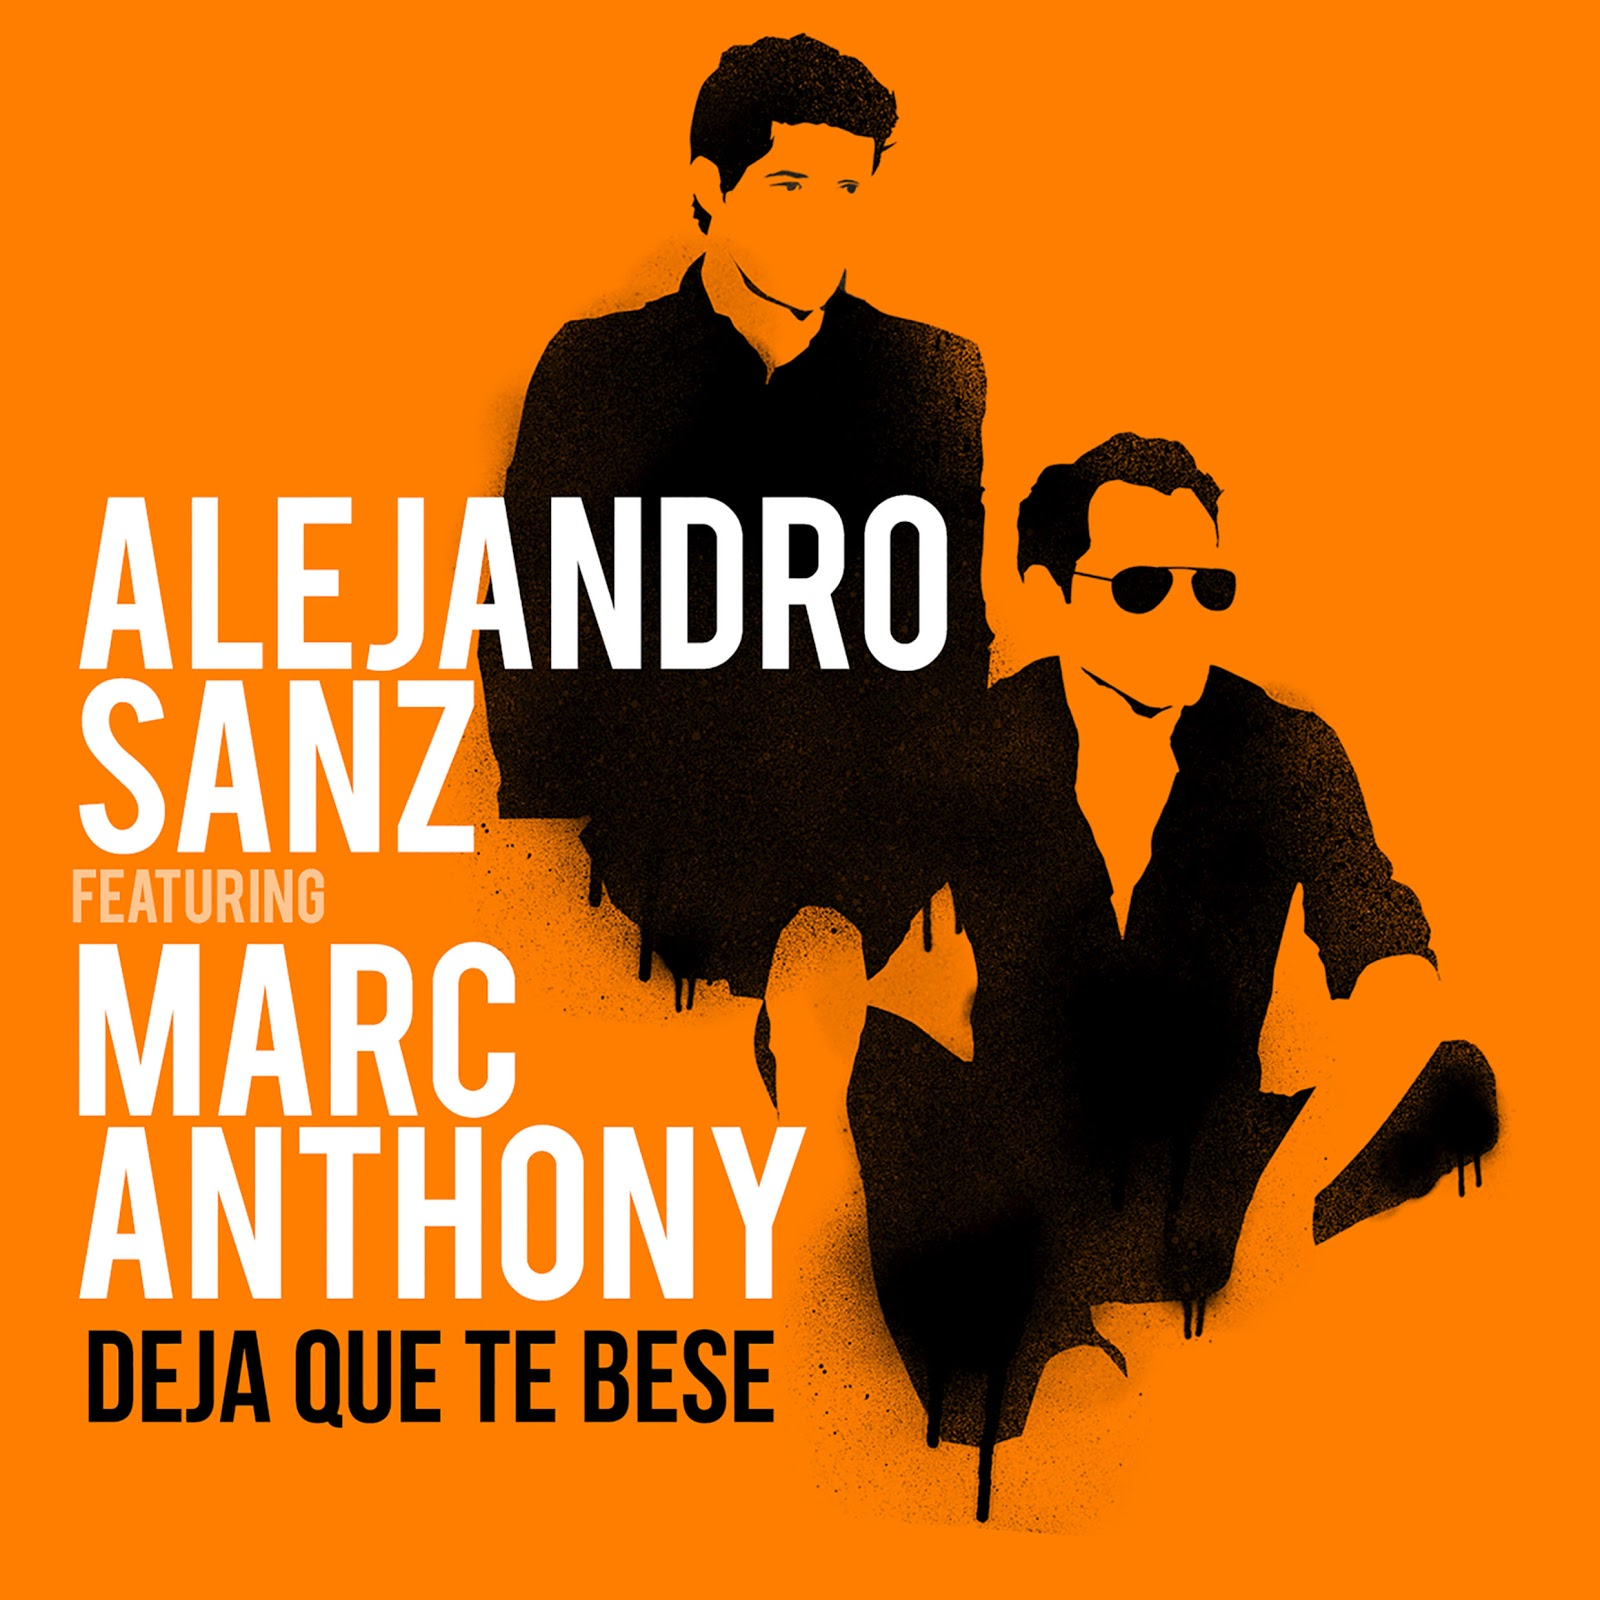 Deja que te bese Alejandro Sanz Ft. Marc Anthony